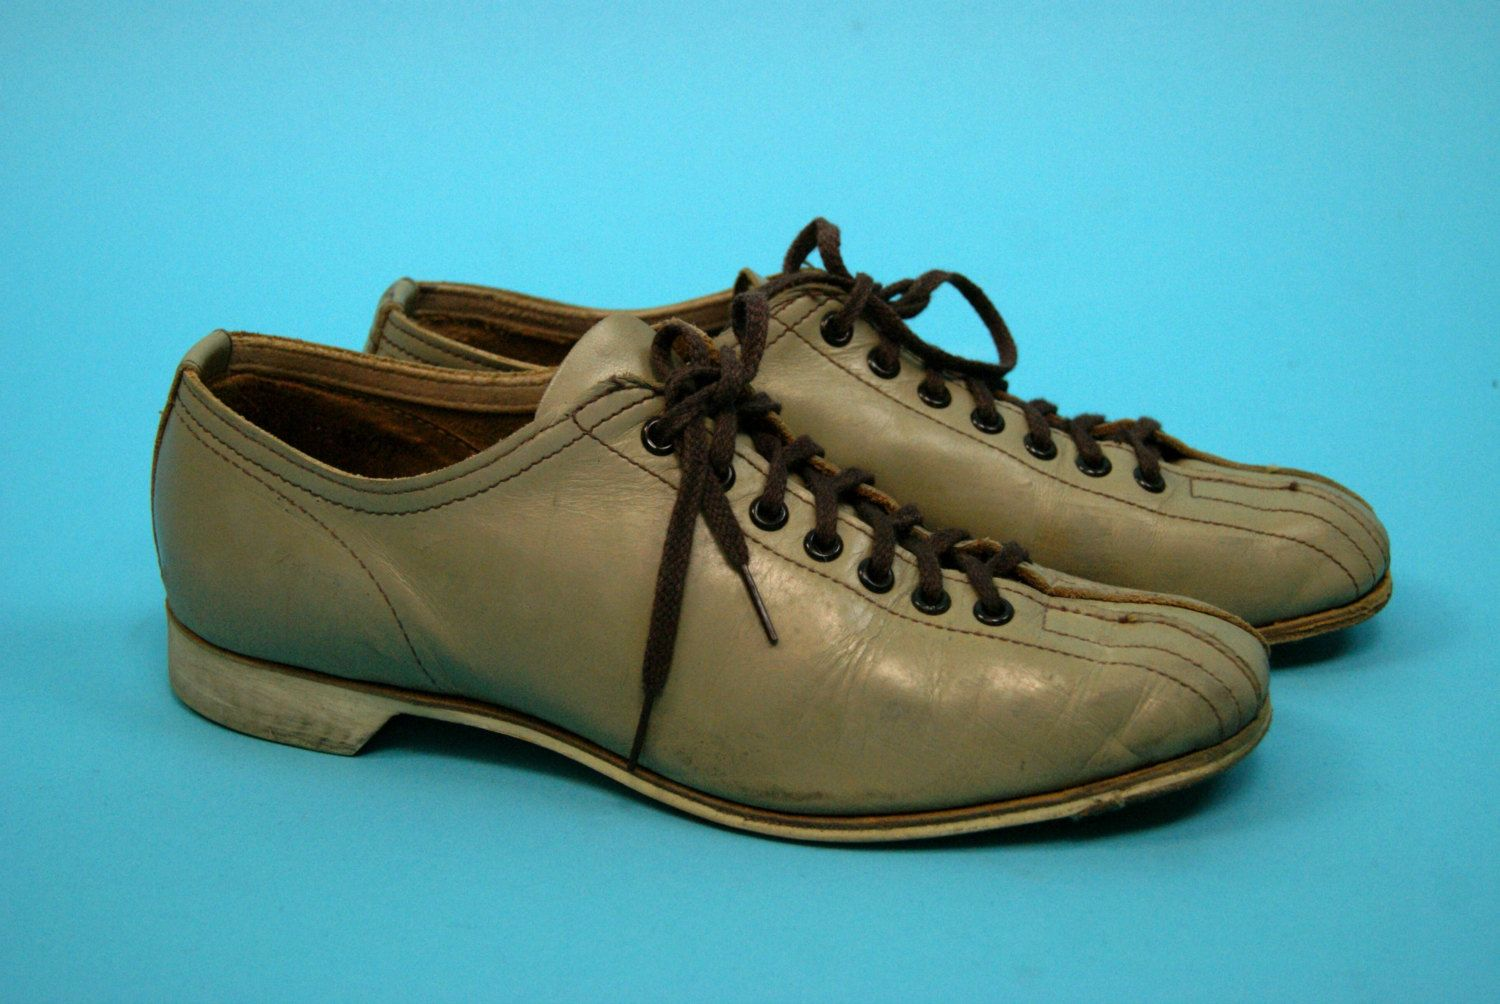 vintage brown leather retro pin up rockabilly mid century mad men era authentic bowling shoes - 1960s - women's size 9